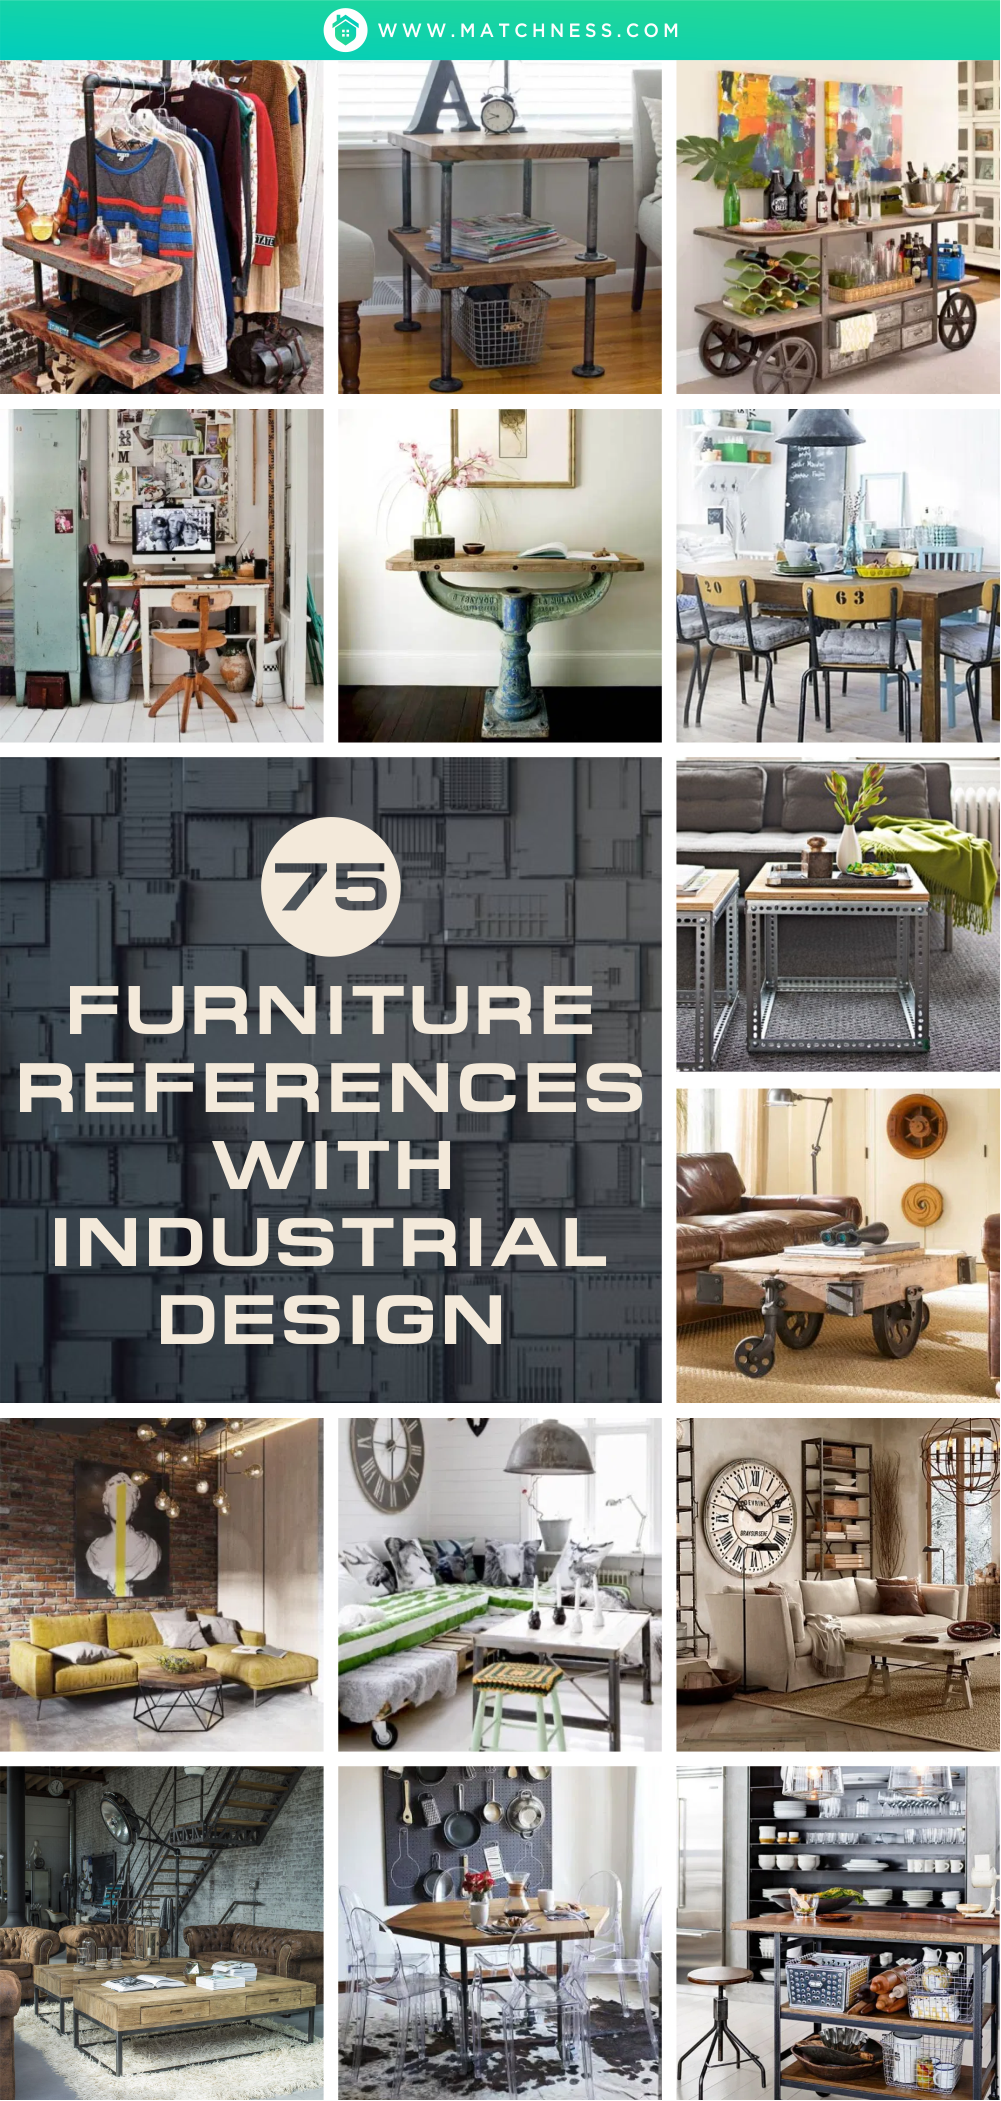 75-furniture-references-with-industrial-design1